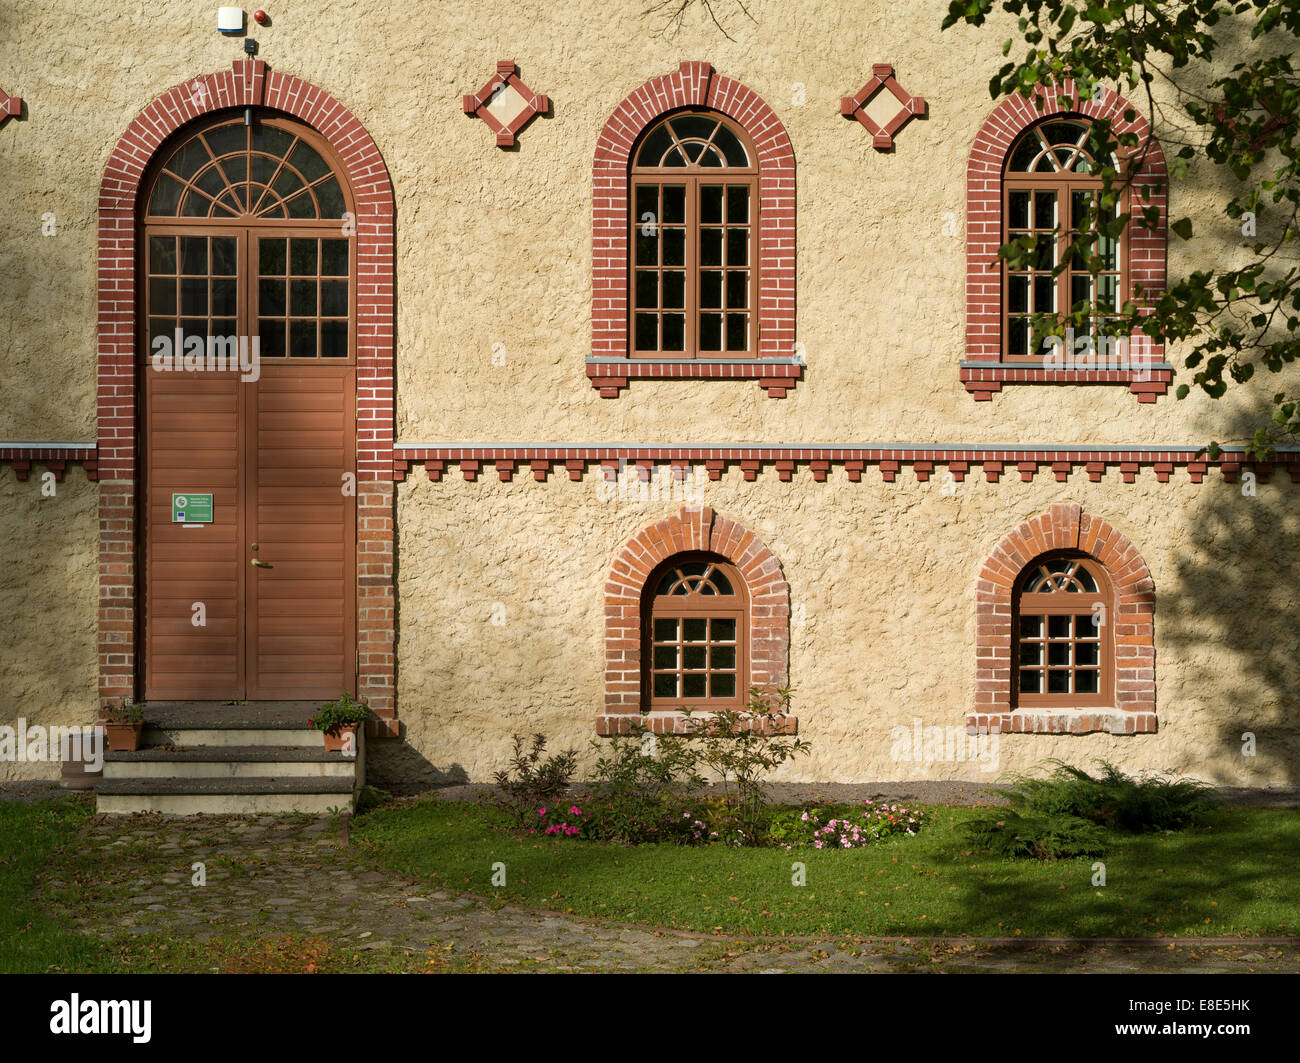 Facade Of The Mooste Distillery Guesthouse Auxiliary Building Of The Mooste Manor. Estonia Estland EU - Stock Image